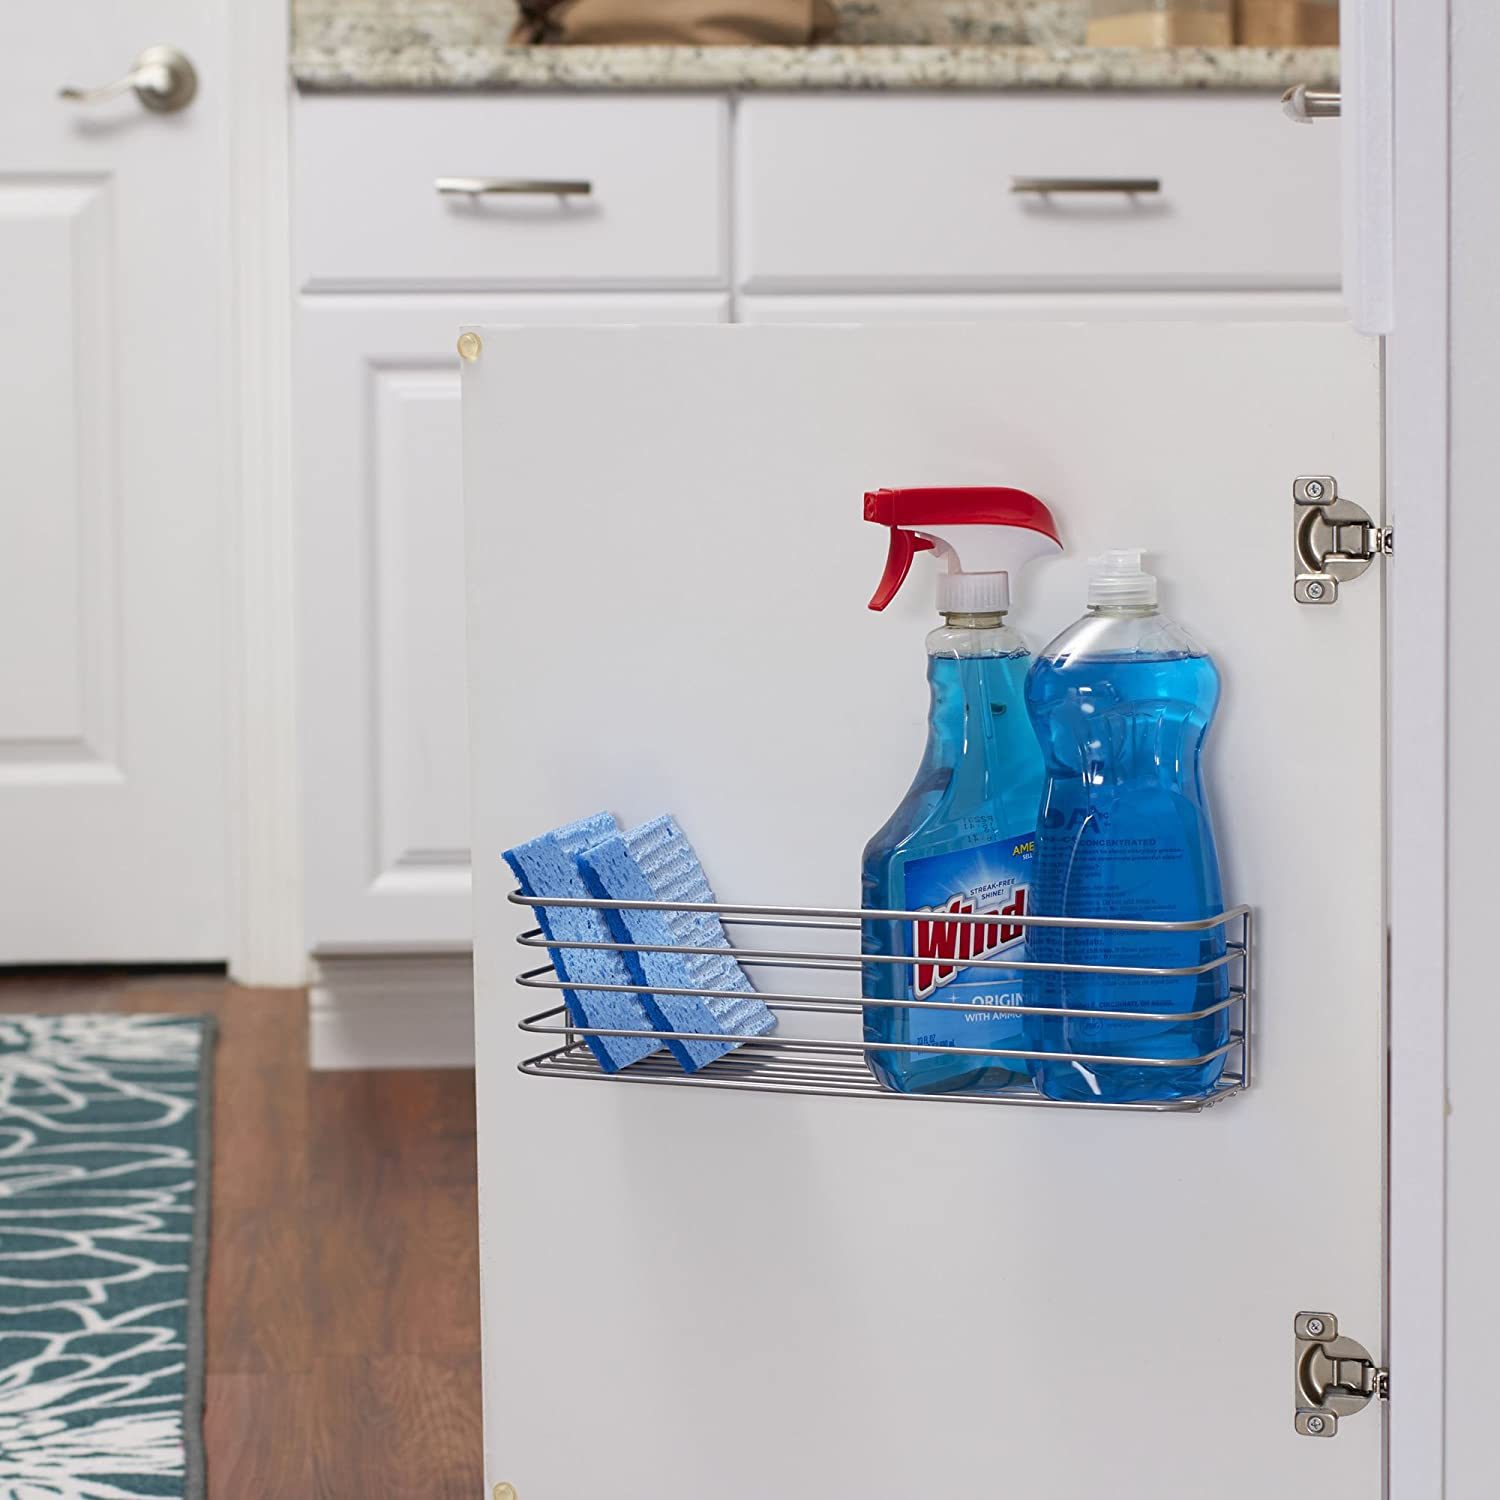 Household Essentials 1229-1 Kitchen Under Sink Organizer Great for Cutting Boards and Kitchen Wrap Mounts to Walls and Cabinet Doors